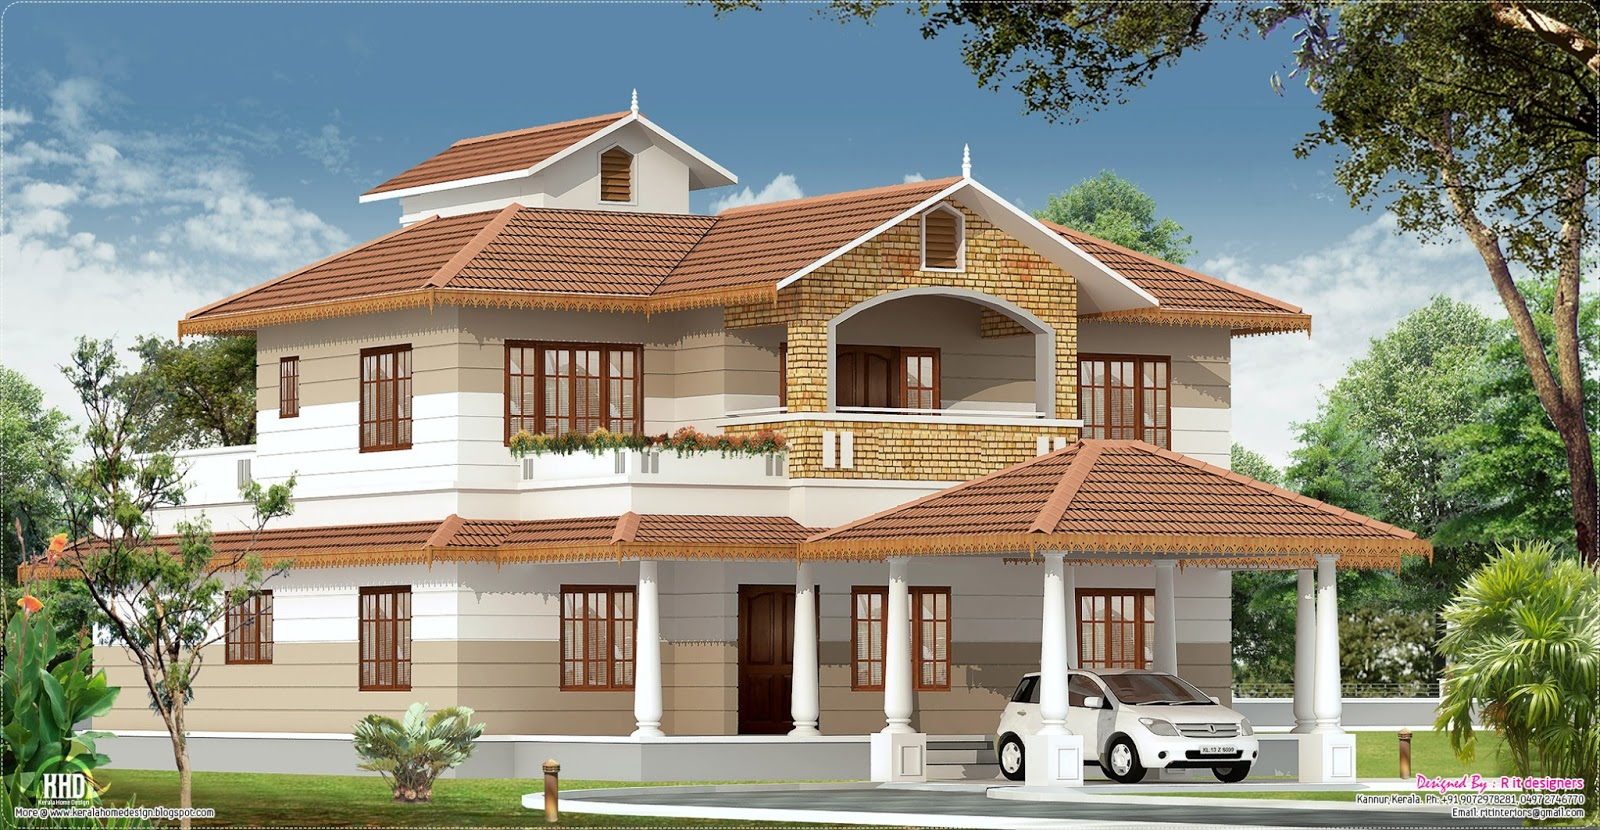 kerala style home interior designs by r it designers kannur kerala